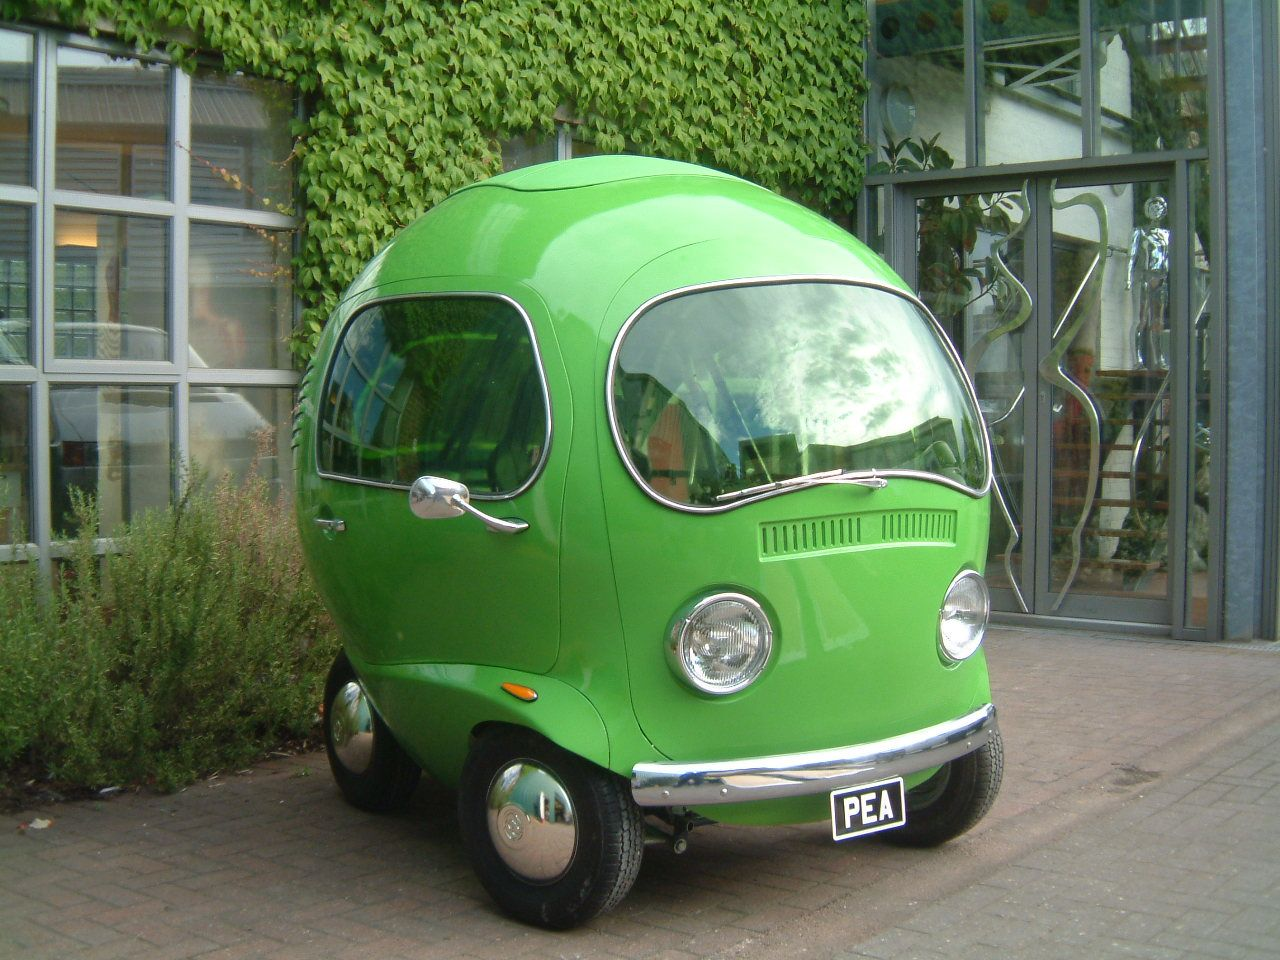 Birdseye Pea Car - Can I say that if I came into a lot of money this is the first thing I would buy or have built...it's undeniably the cutest inanimate object I can imagine.